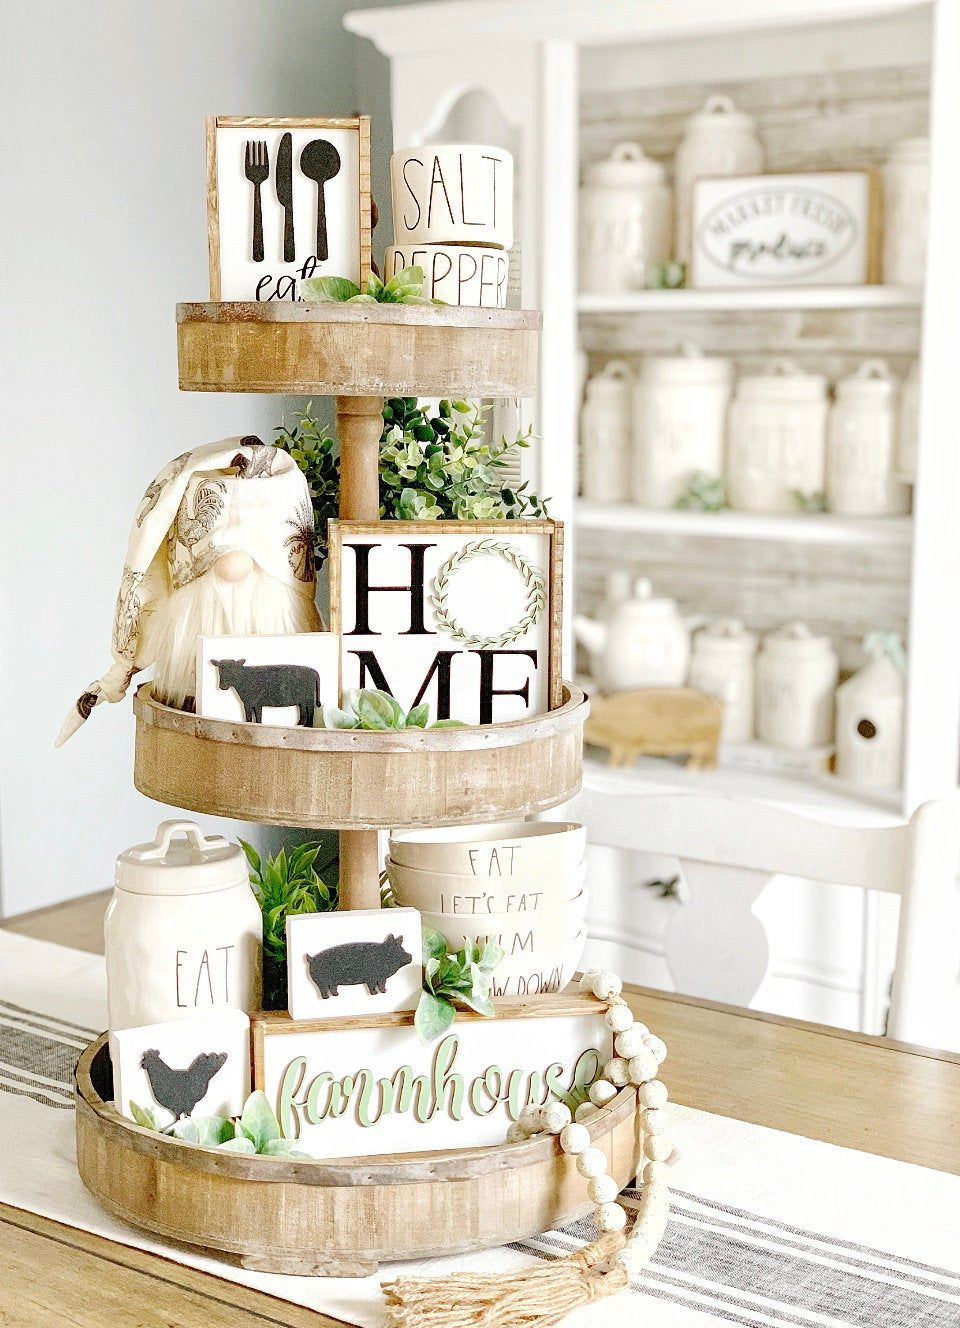 Farmhouse signs / tiered tray decor / home sign / kitchen signs / rae Dunn decor / 3D signs / pig / cow / chicken/  small signs / coffee bar #tieredtraydecor